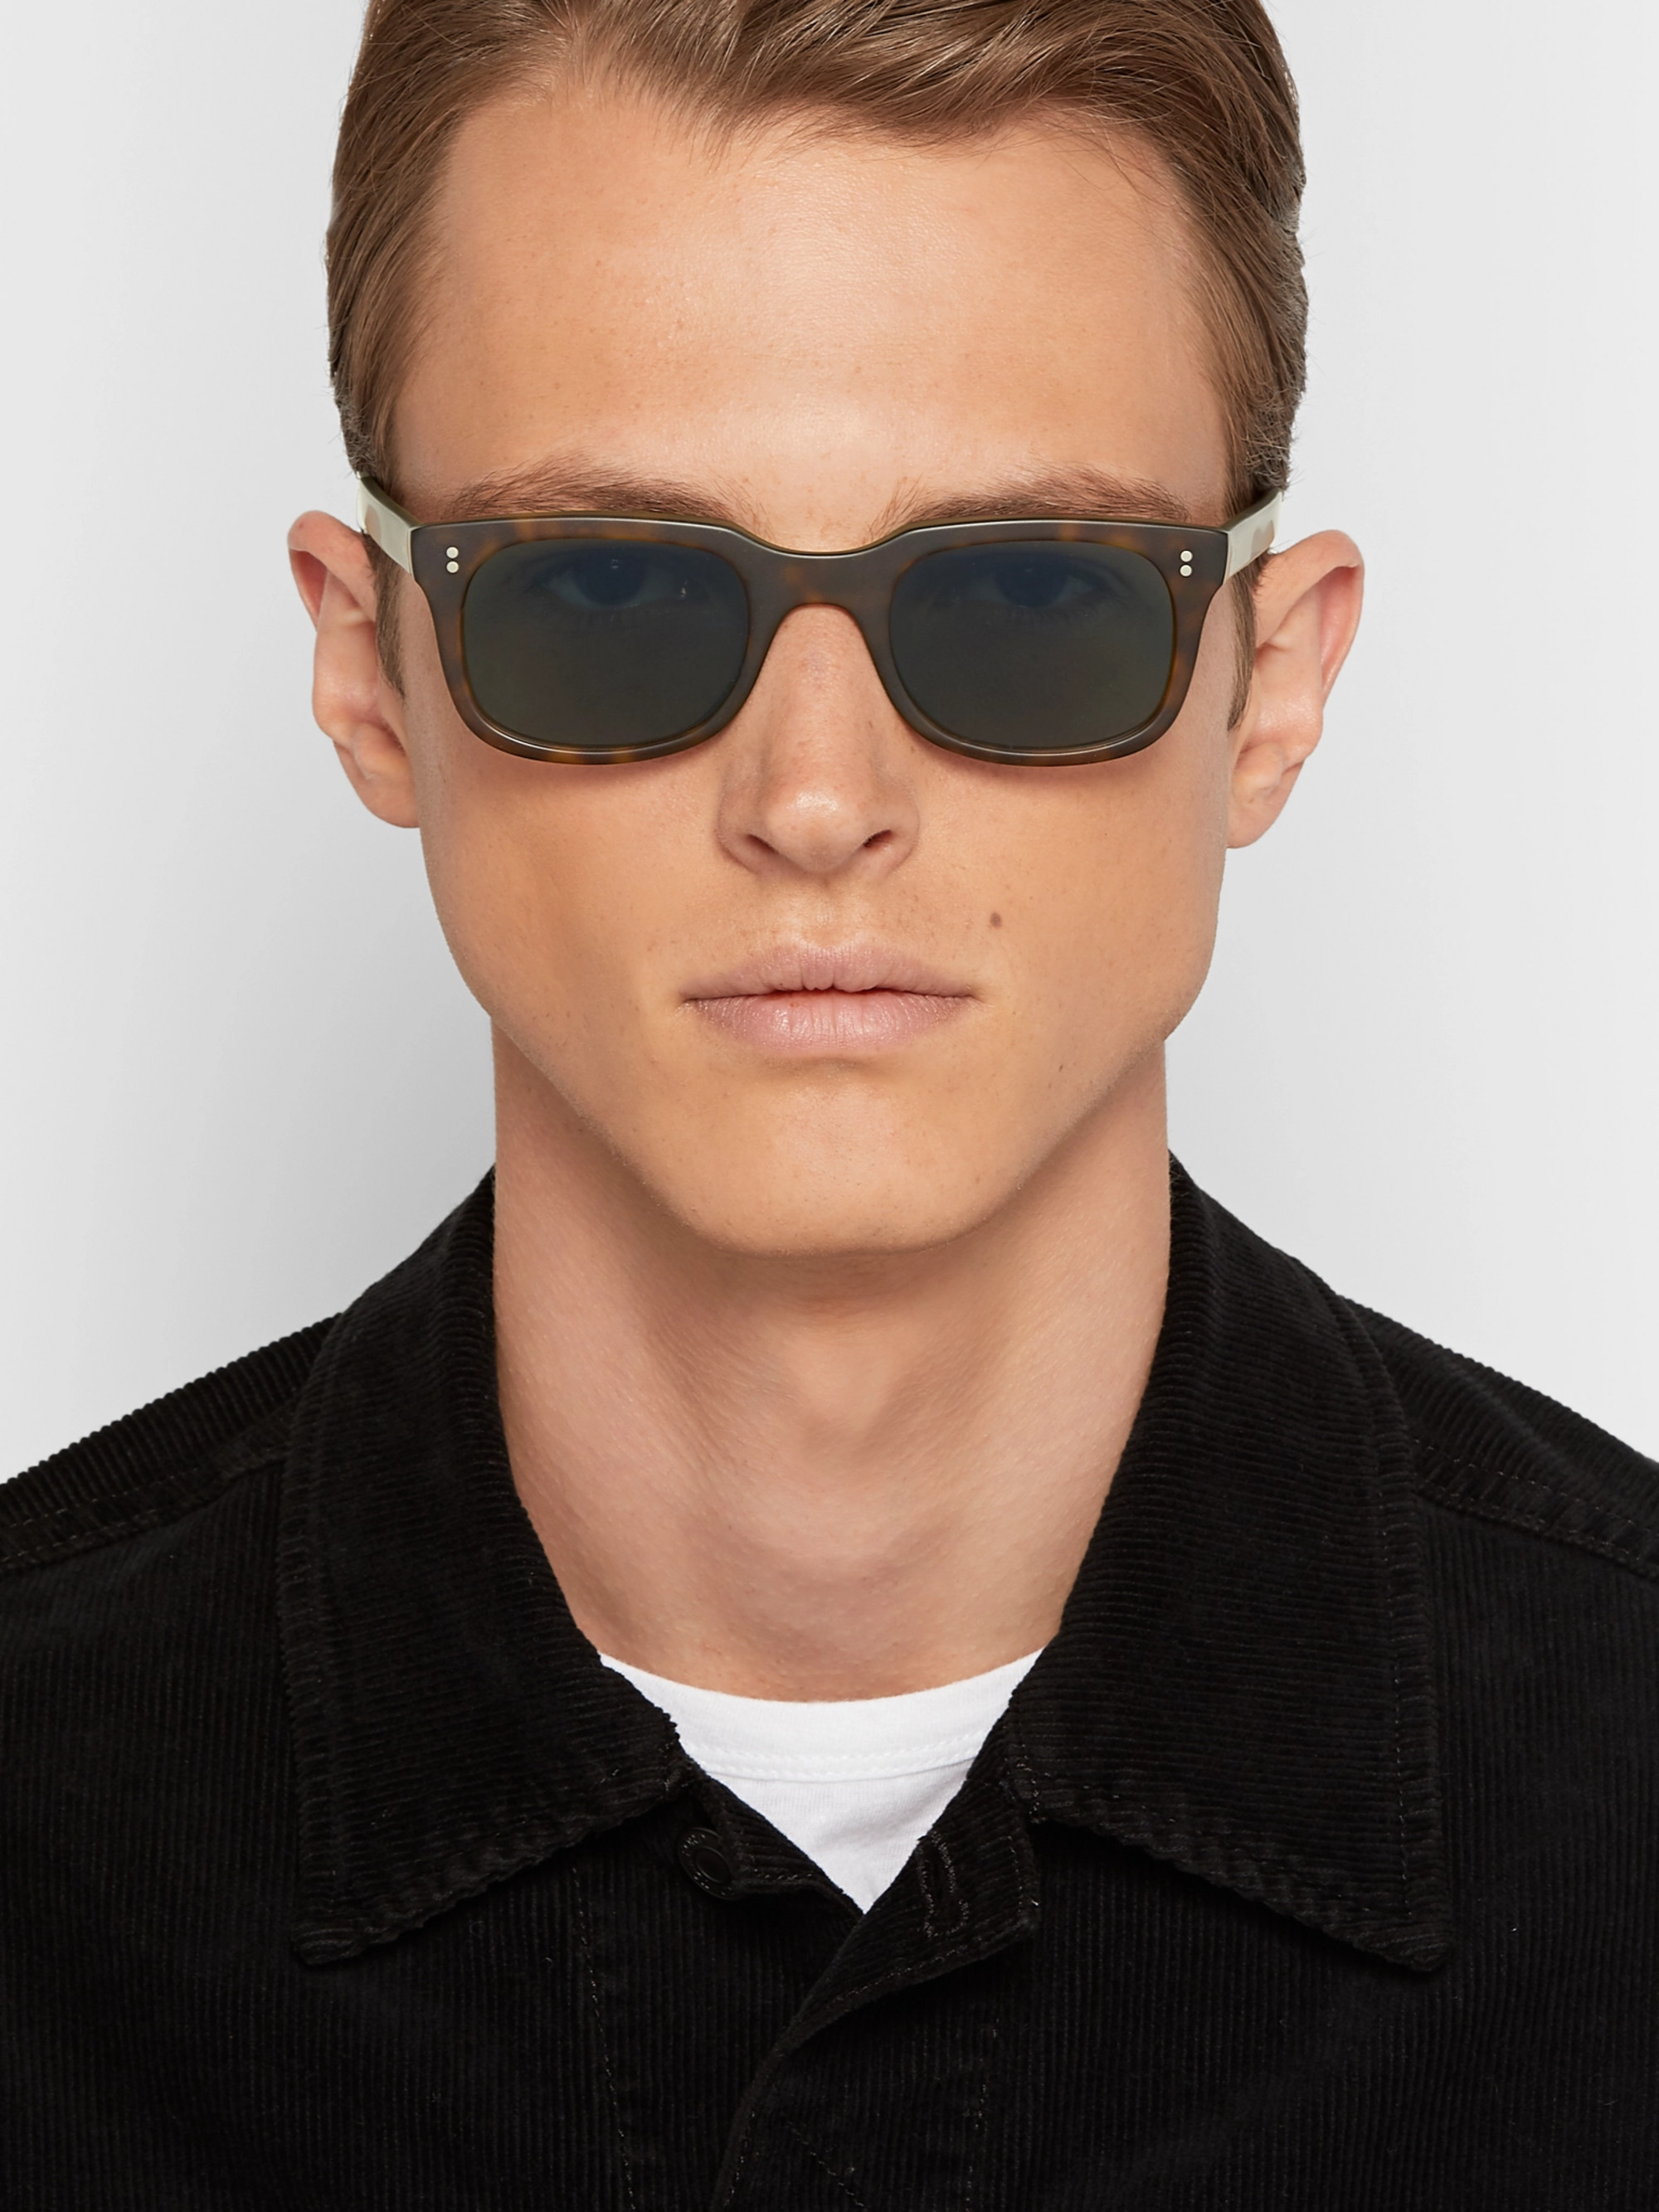 f93f9b0ca5 Kingsman + Culter and Gross Square-Frame Matte Tortoiseshell Acetate  Sunglasses